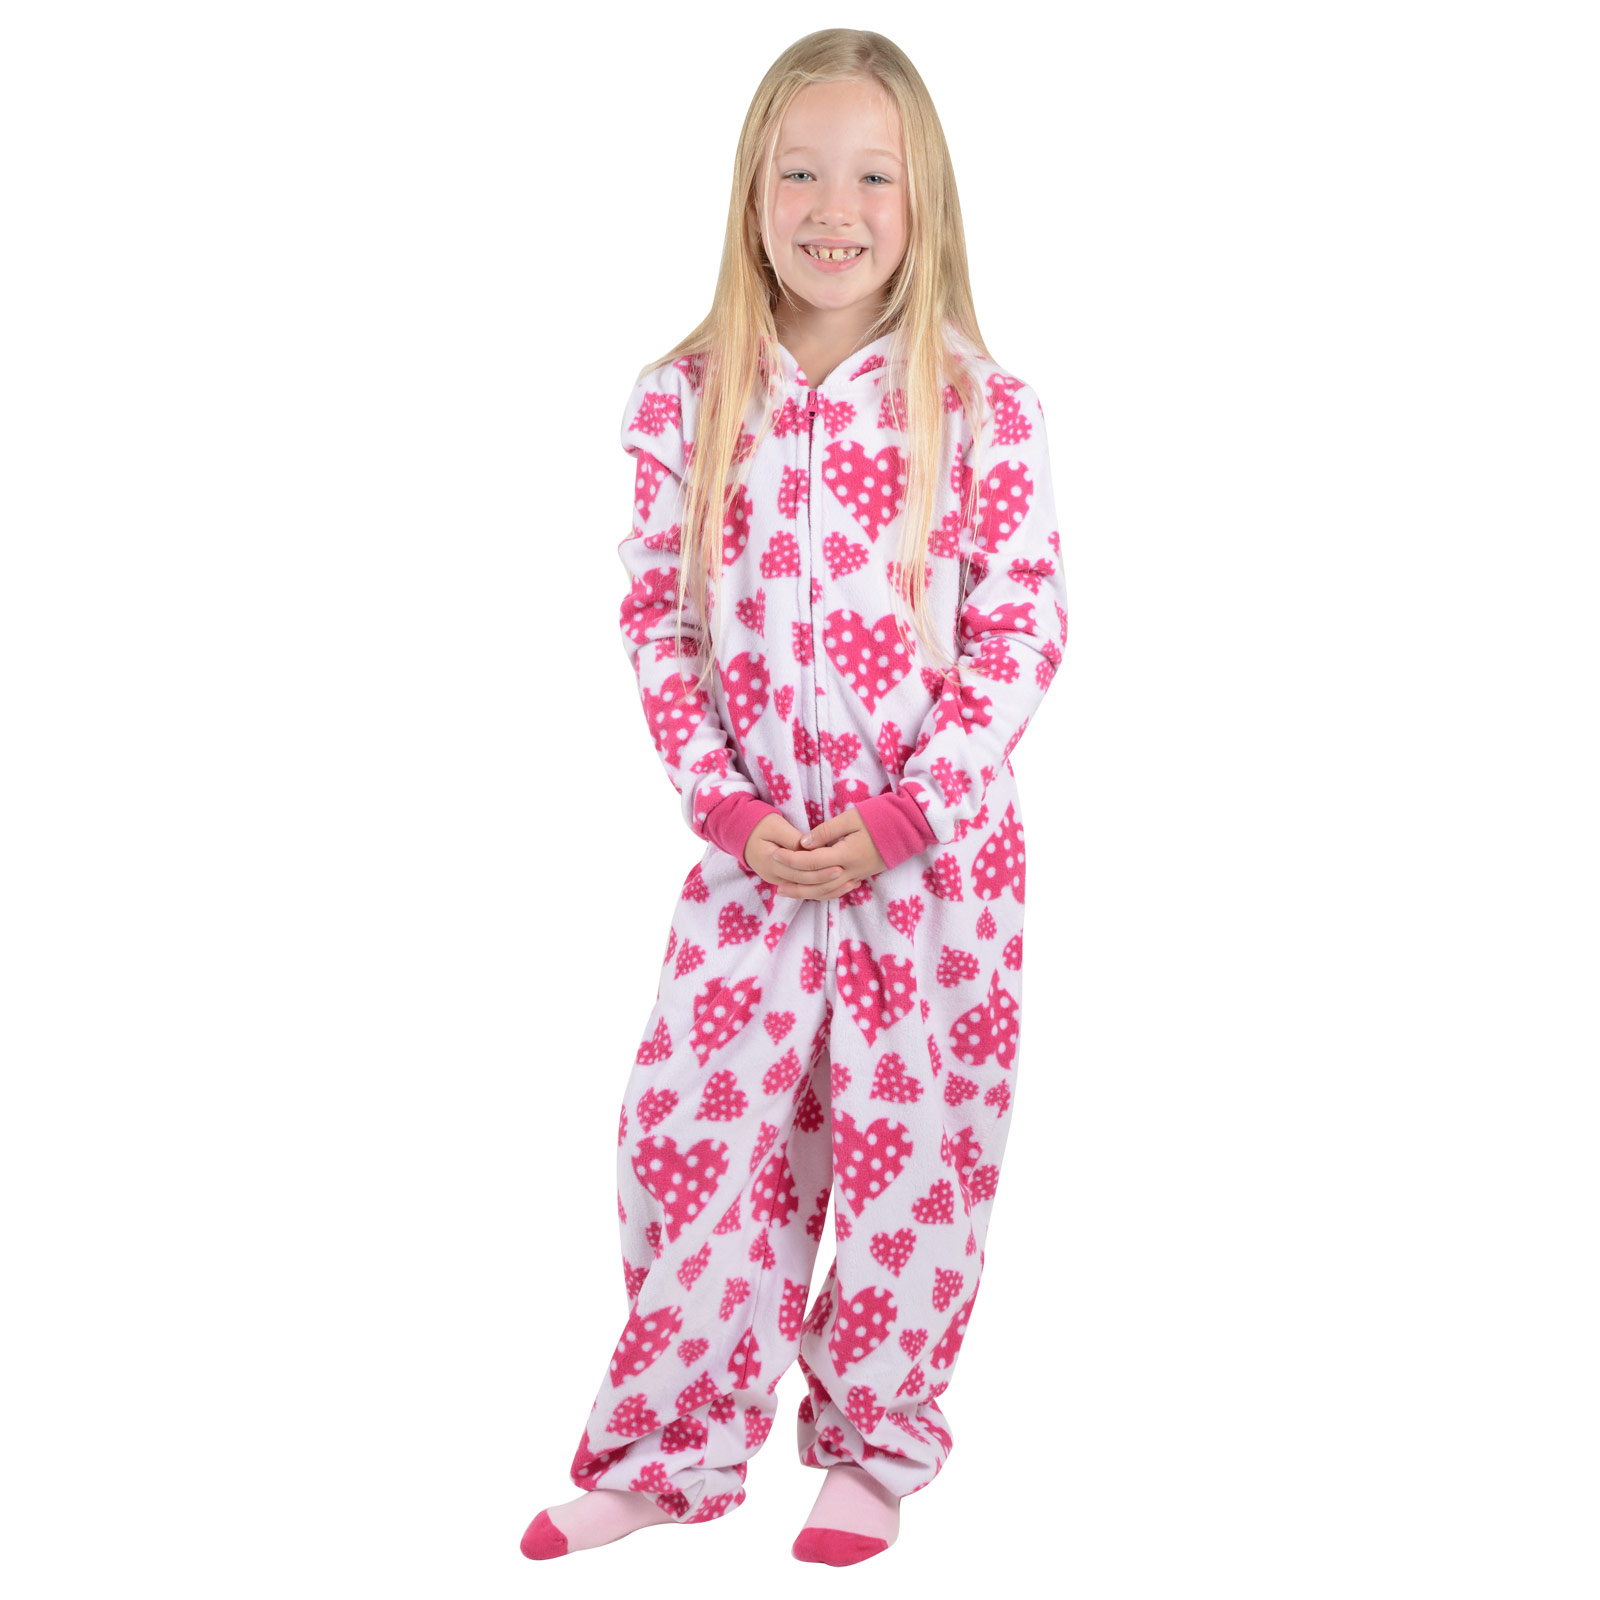 Known for their comfy, cozy feel, Hanna's kids pajamas are crafted from the softest organic cotton knit we could find. With comfort-enhancing details like super-smooth flatlock seams, % organic cotton rib knit and comfy encased stretch waists, you can be sure your littles will be wrapped in first layer softness all night, every night in our premium kids pj's.